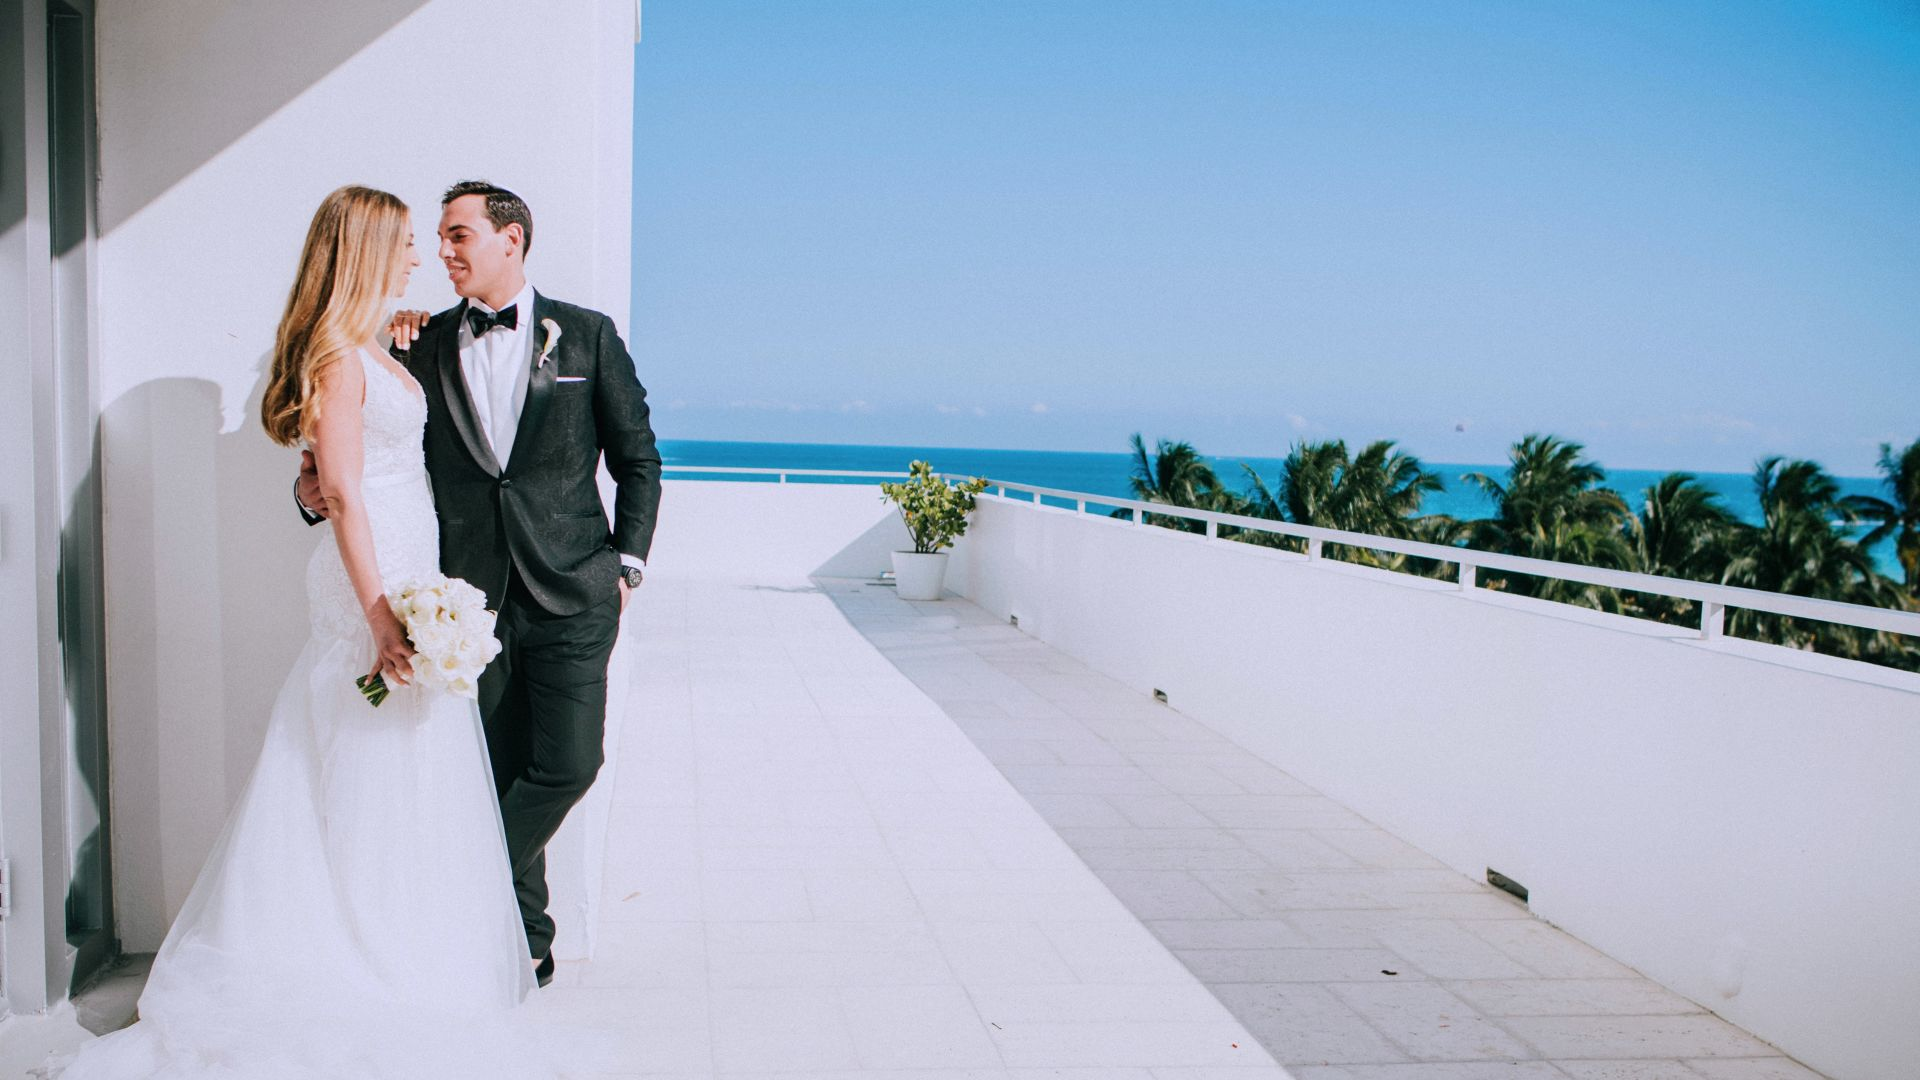 A Person Wearing A Suit And Tie Walking On A Sidewalk